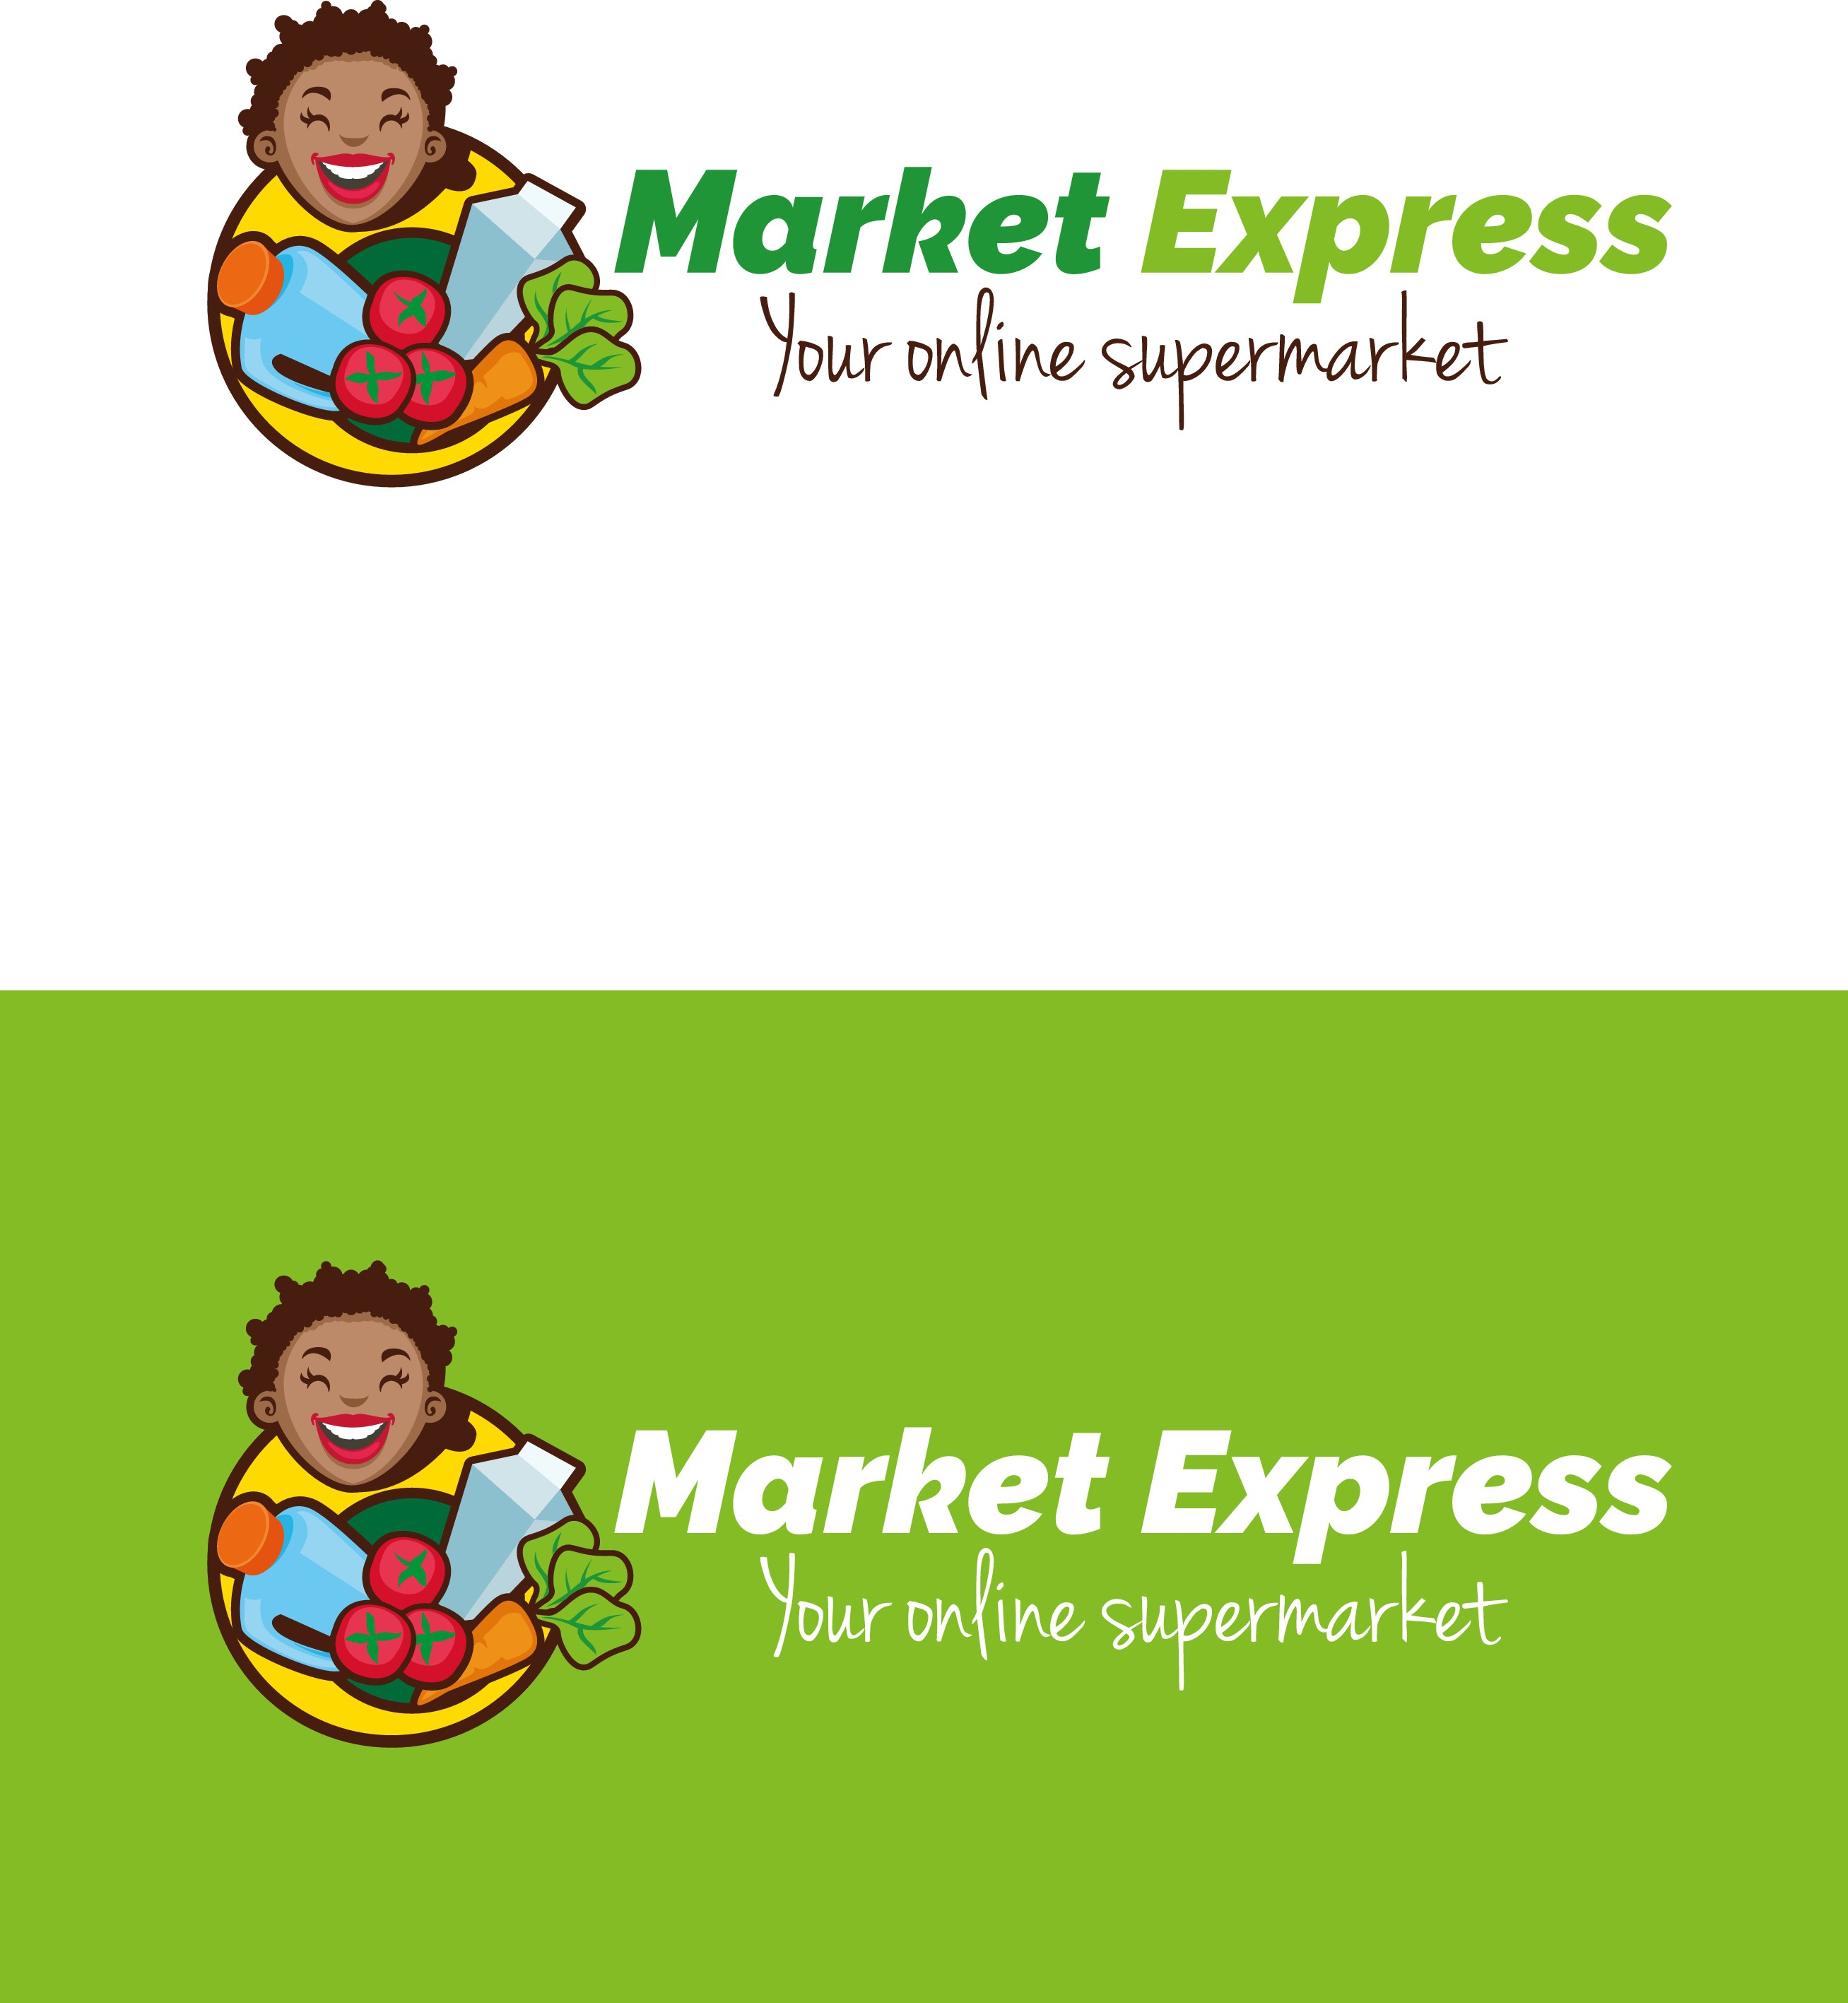 Create a logo for an online grocery delivery service.